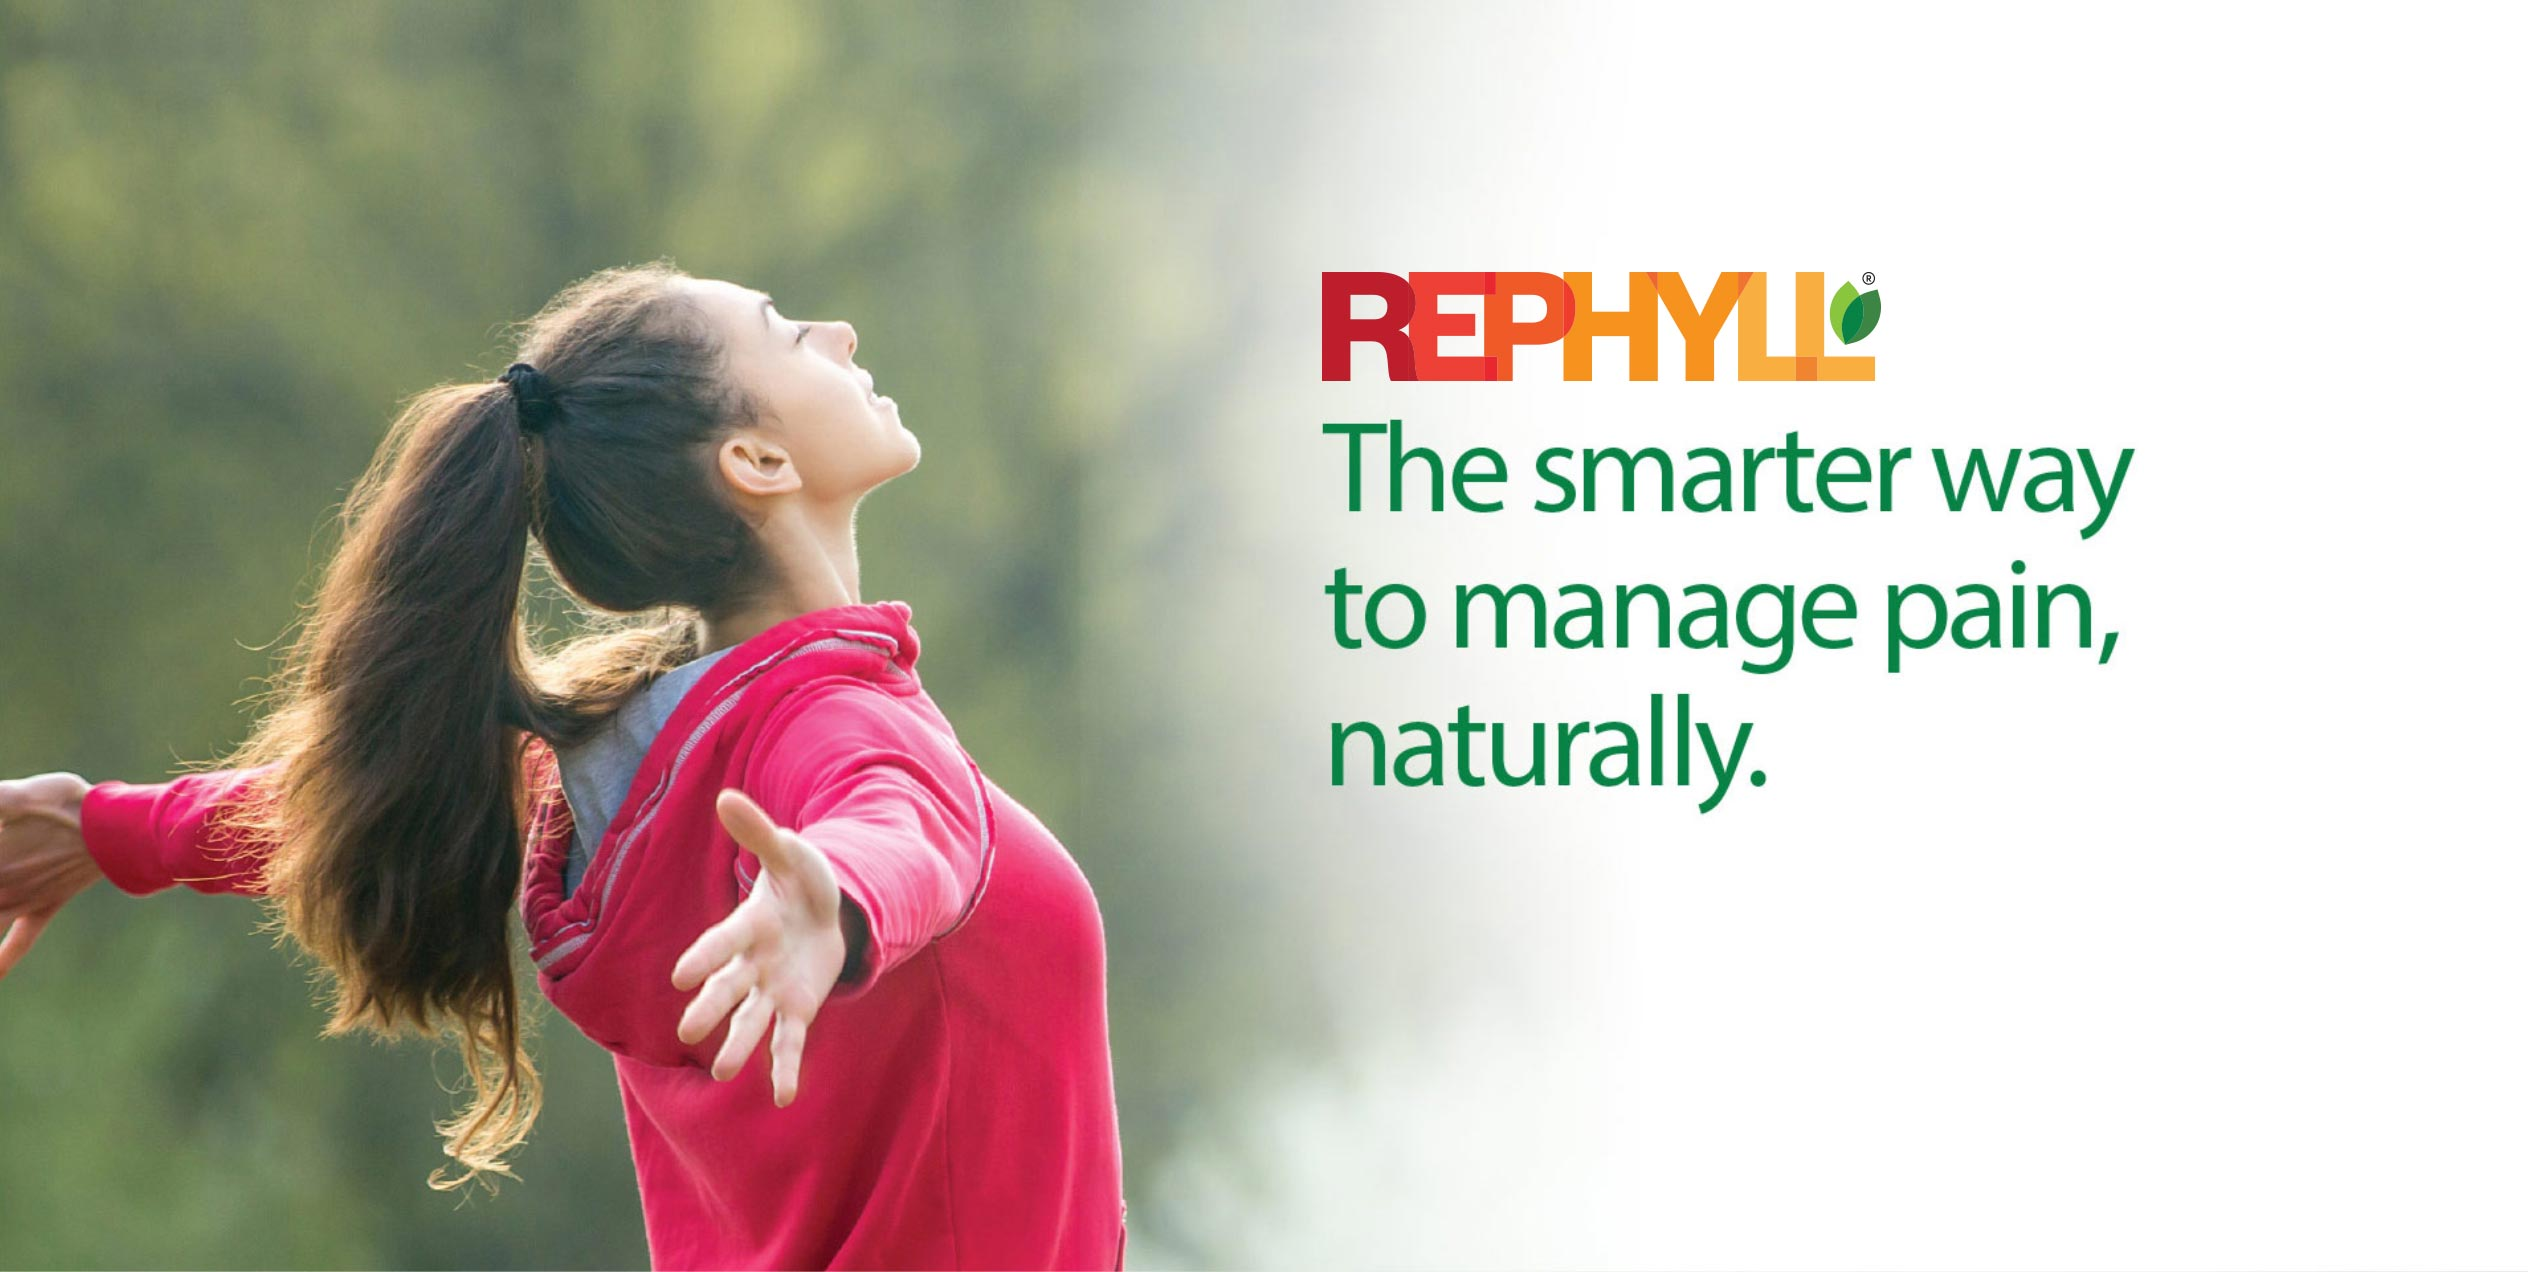 Rephyll Beta Caryophyllene Supplements | The Smarter Way To Manage Pain, Naturally